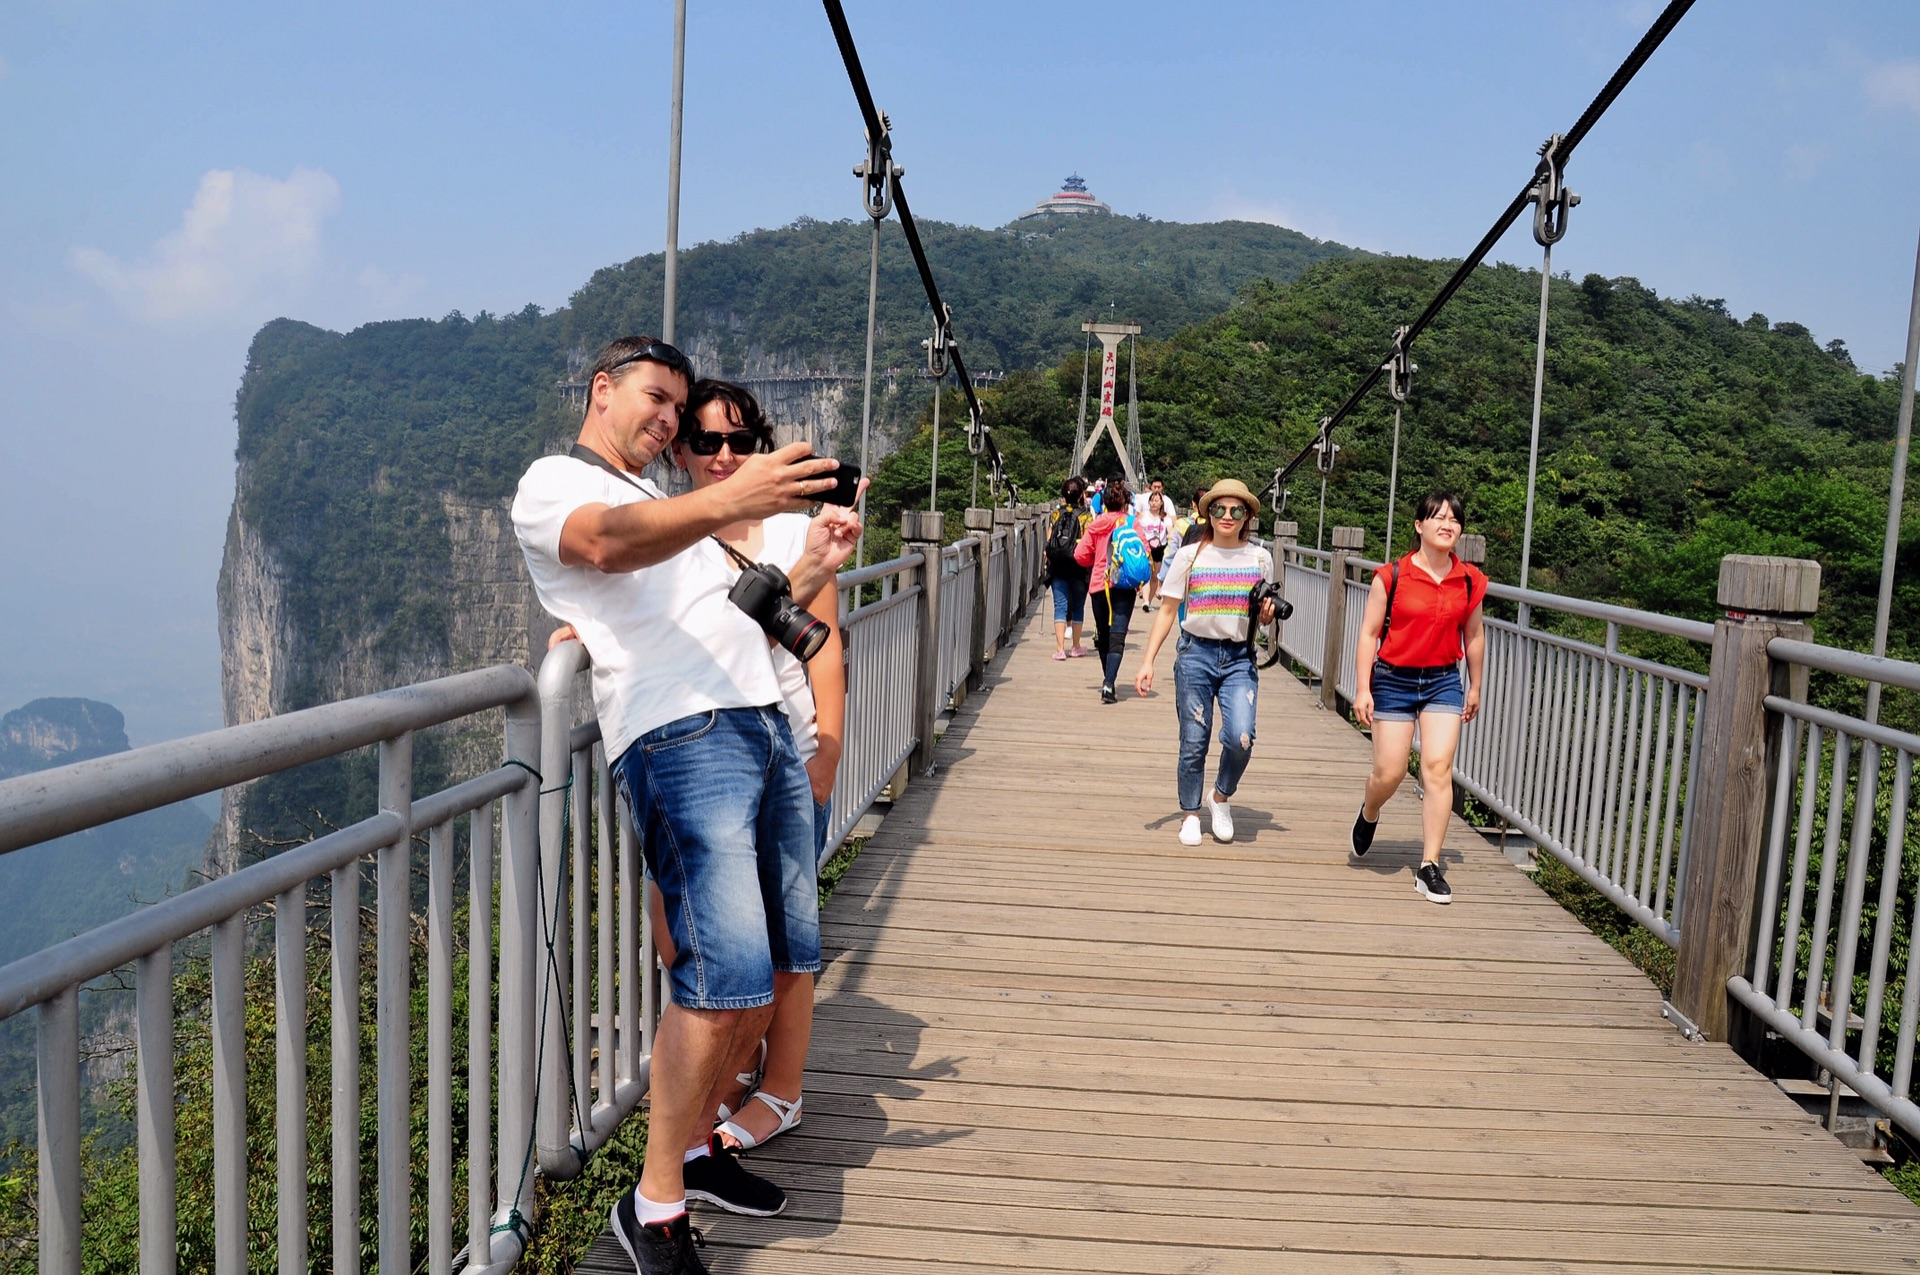 zhangjiajie mount tianmen galss skywalk